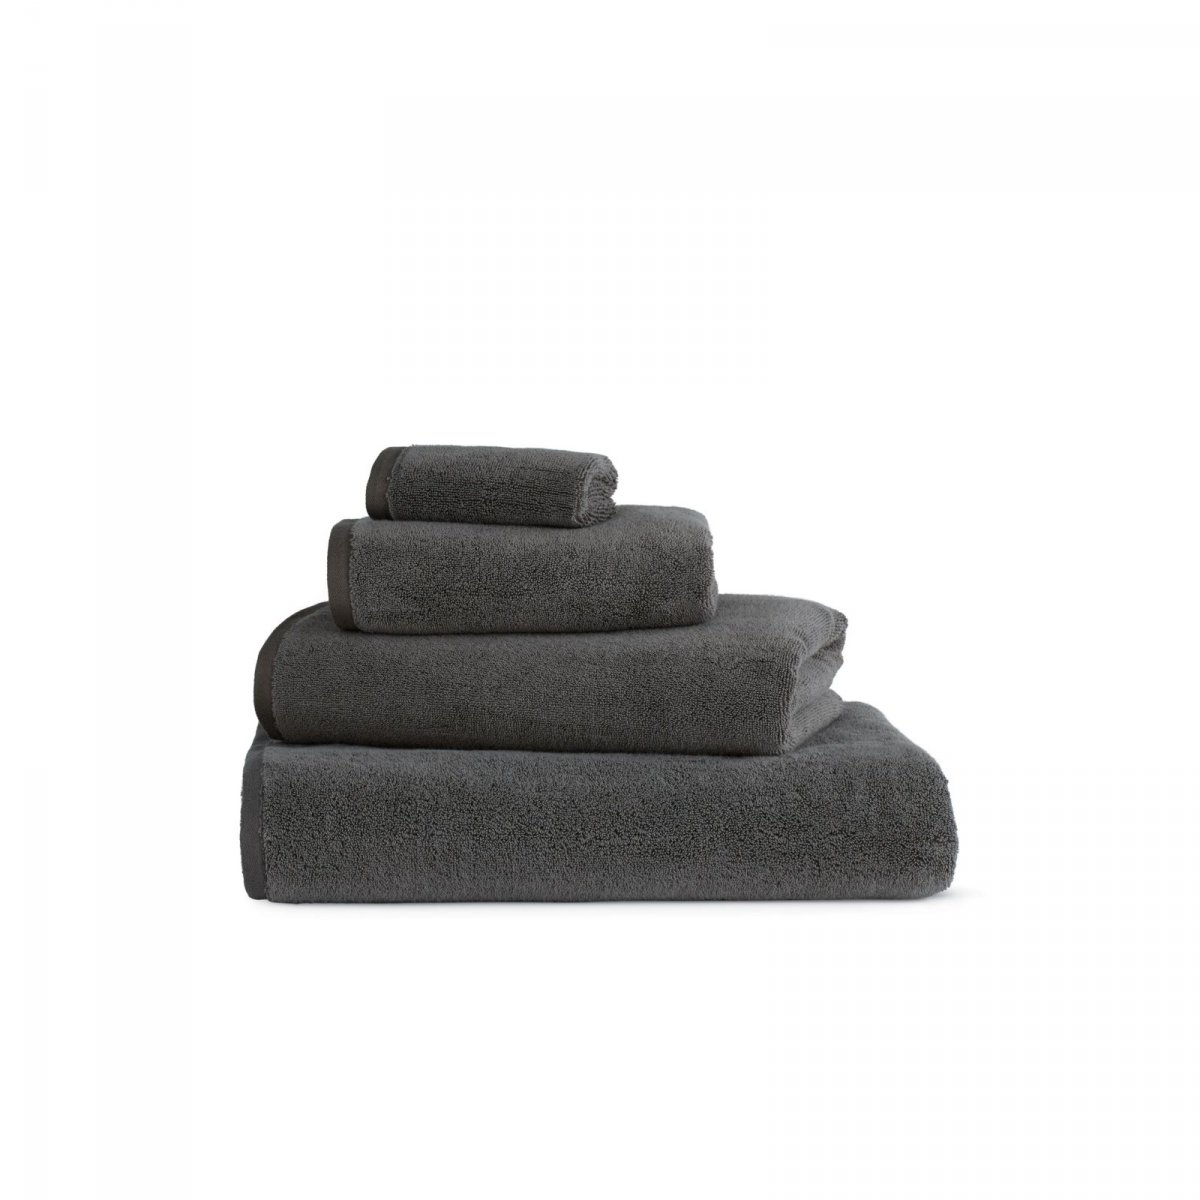 DWR Aerocotton Towels, slate.